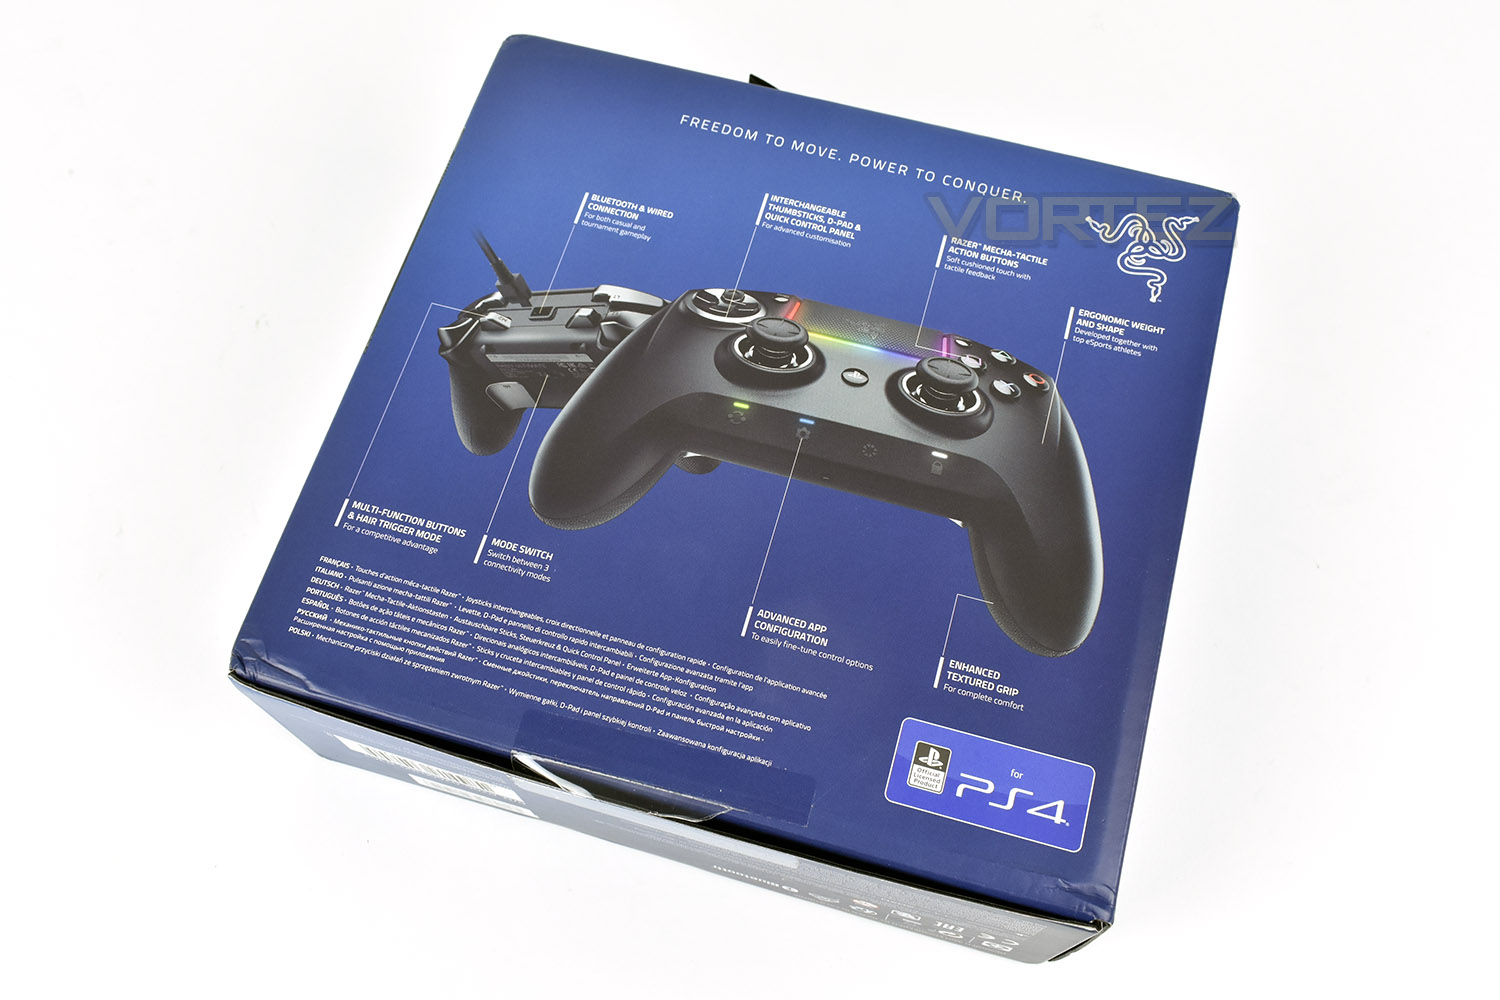 Razer Raiju Ultimate Review Packaging Bundle Razer raiju tournament edition gaming controller features bluetooth and wired connection, and the first to have a mobile configuration app. razer raiju ultimate review packaging